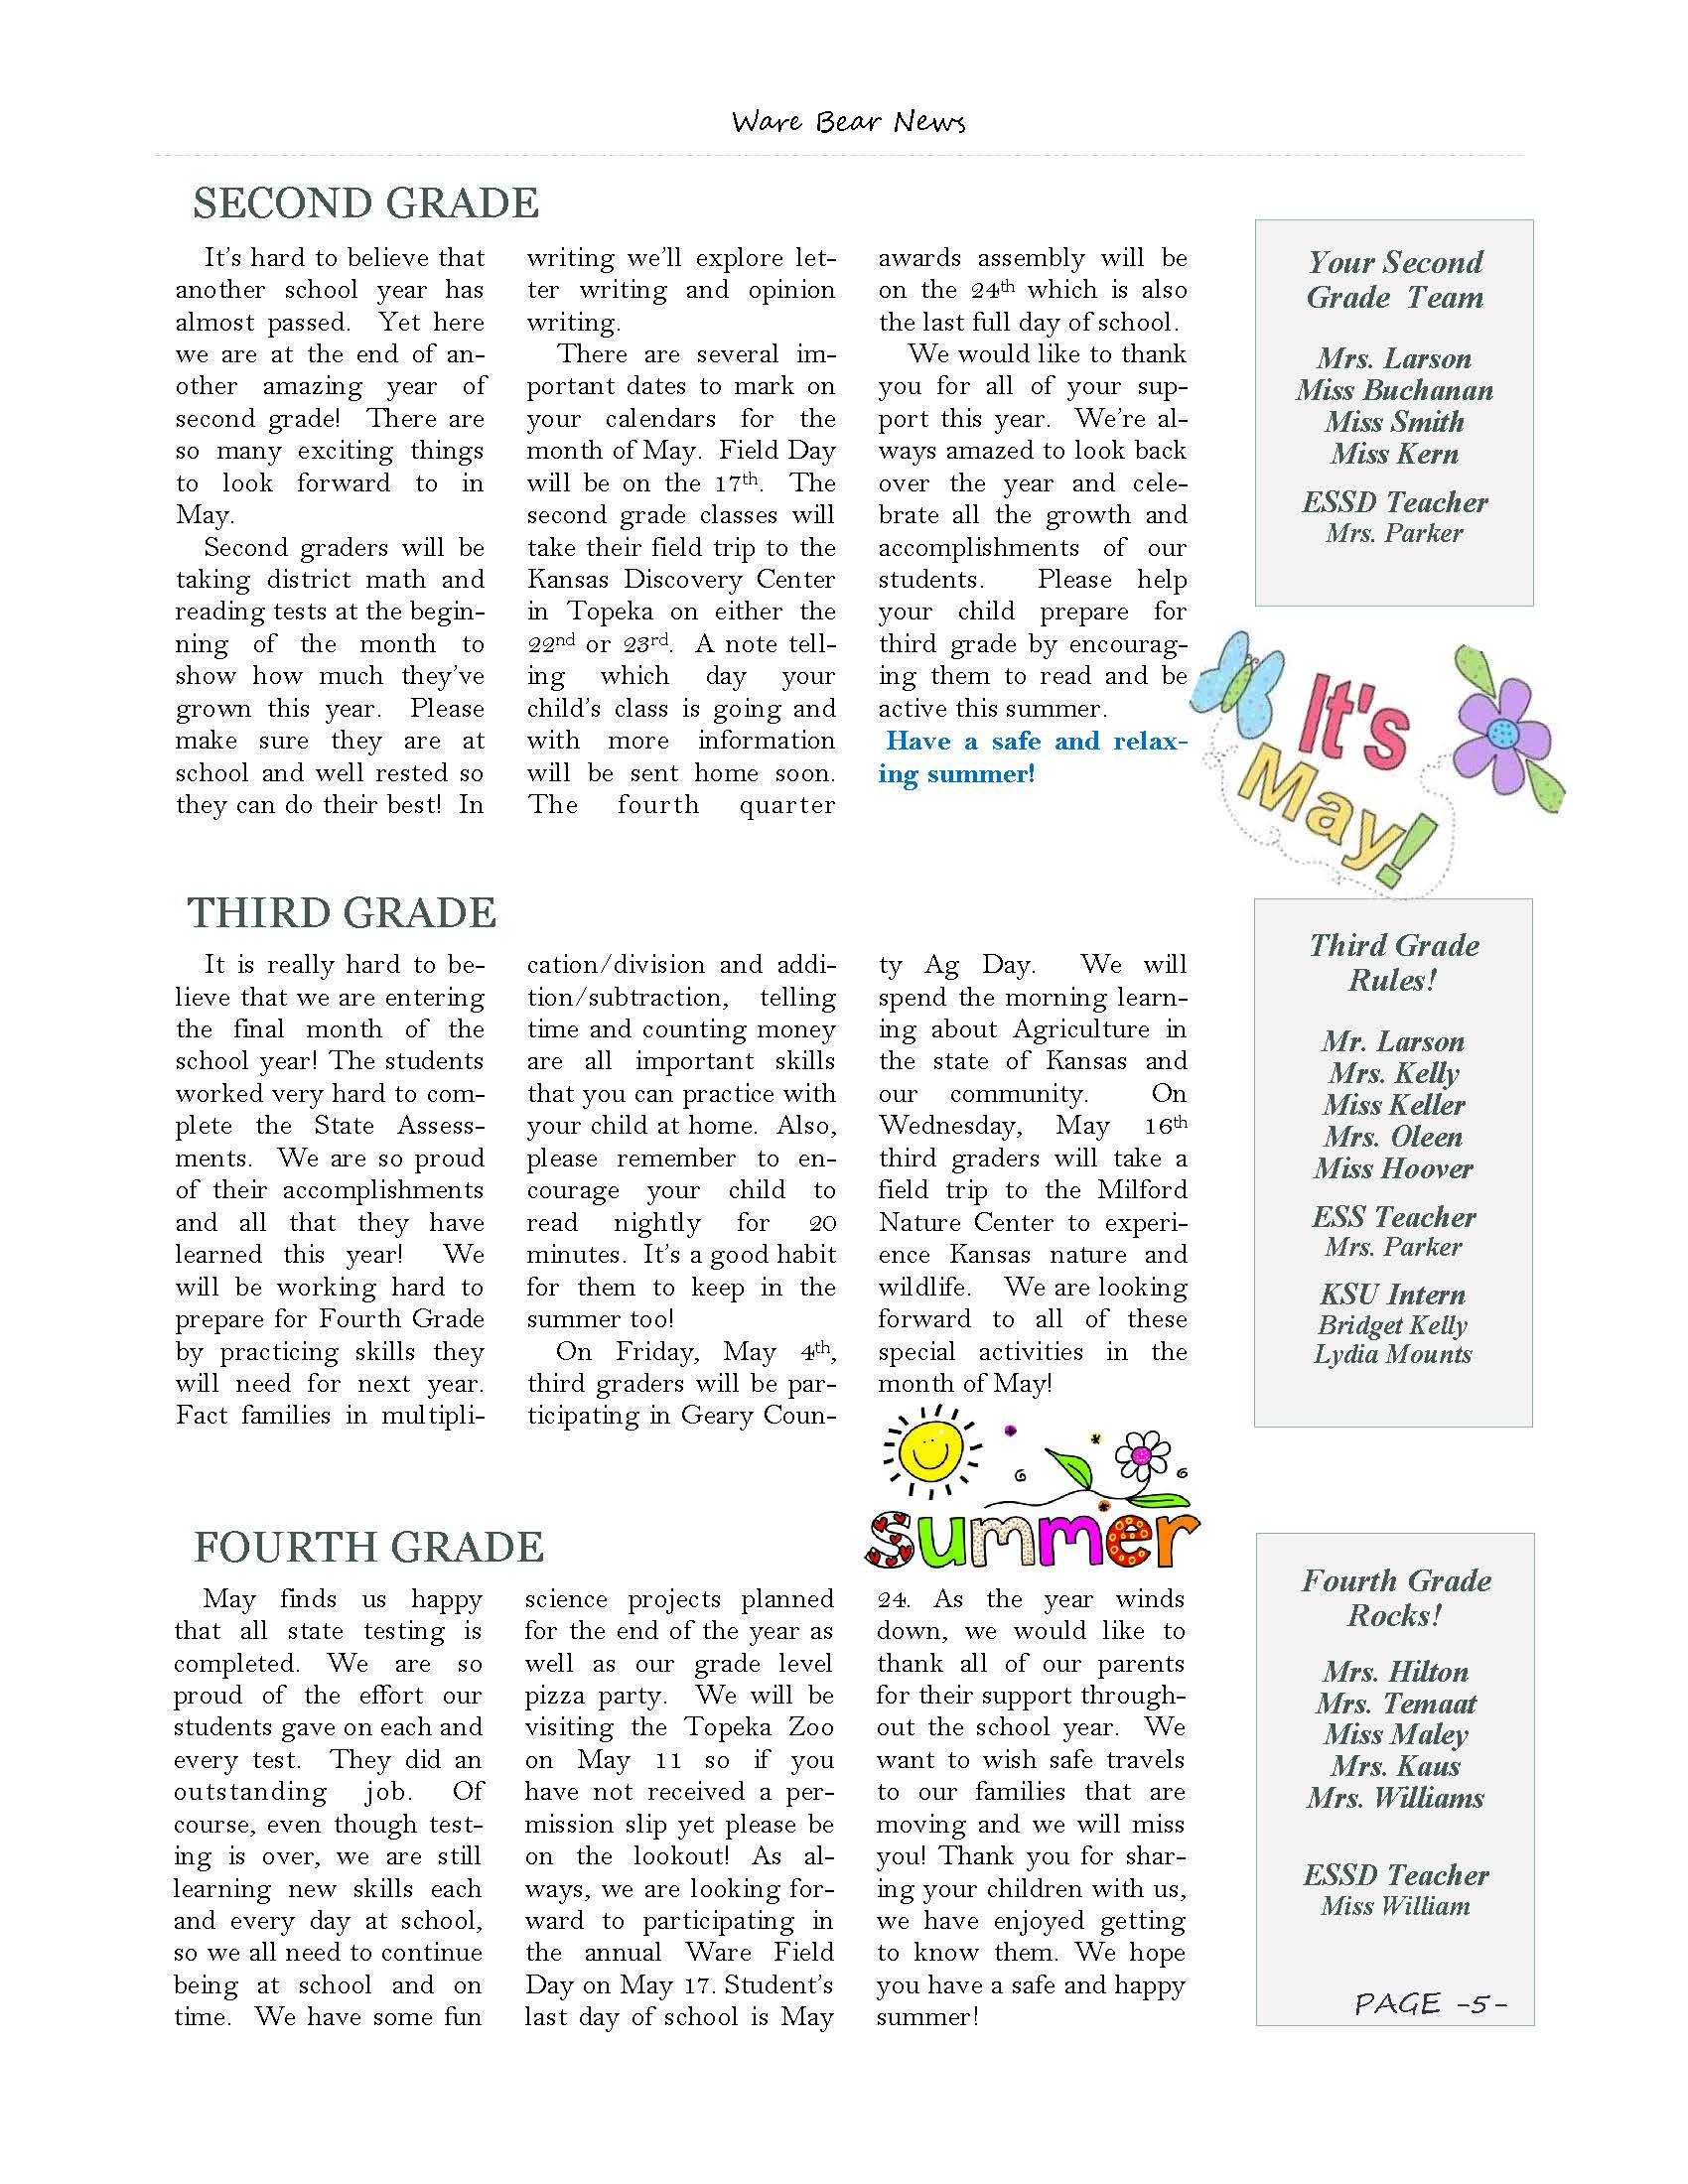 May eNewsletter Page 5